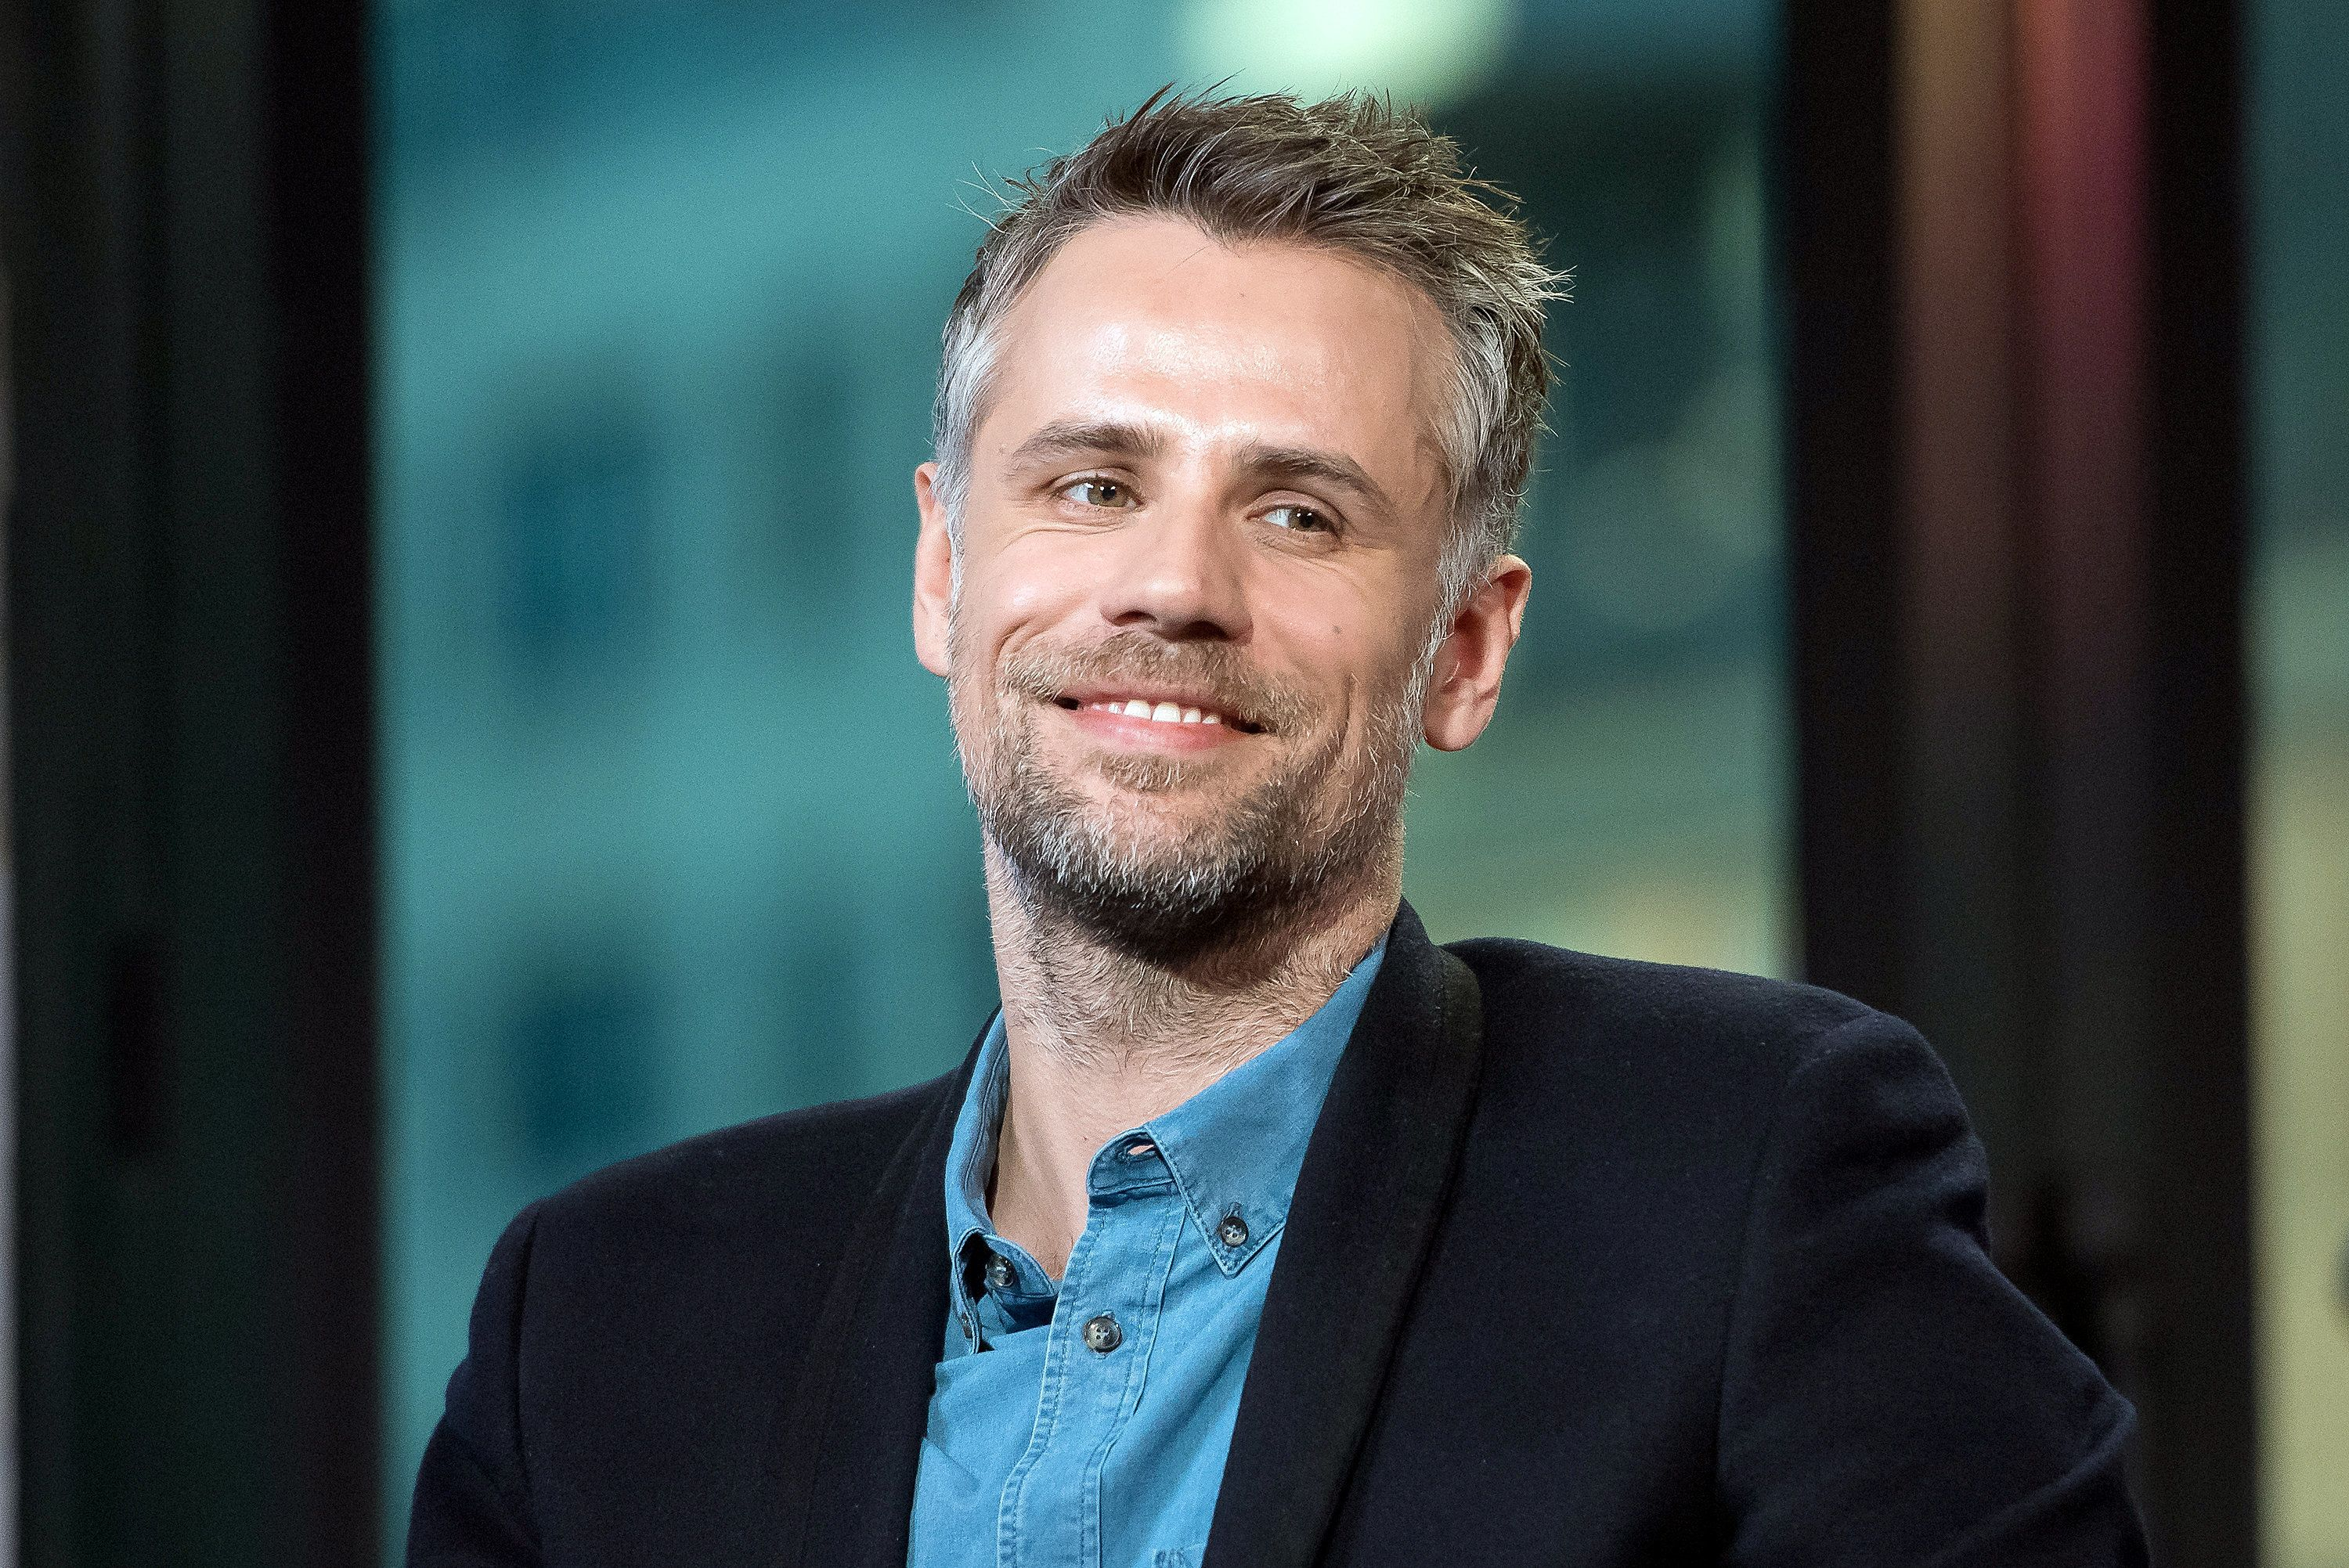 Richard Bacon Reveals He's Given Up Alcohol After Recent Health